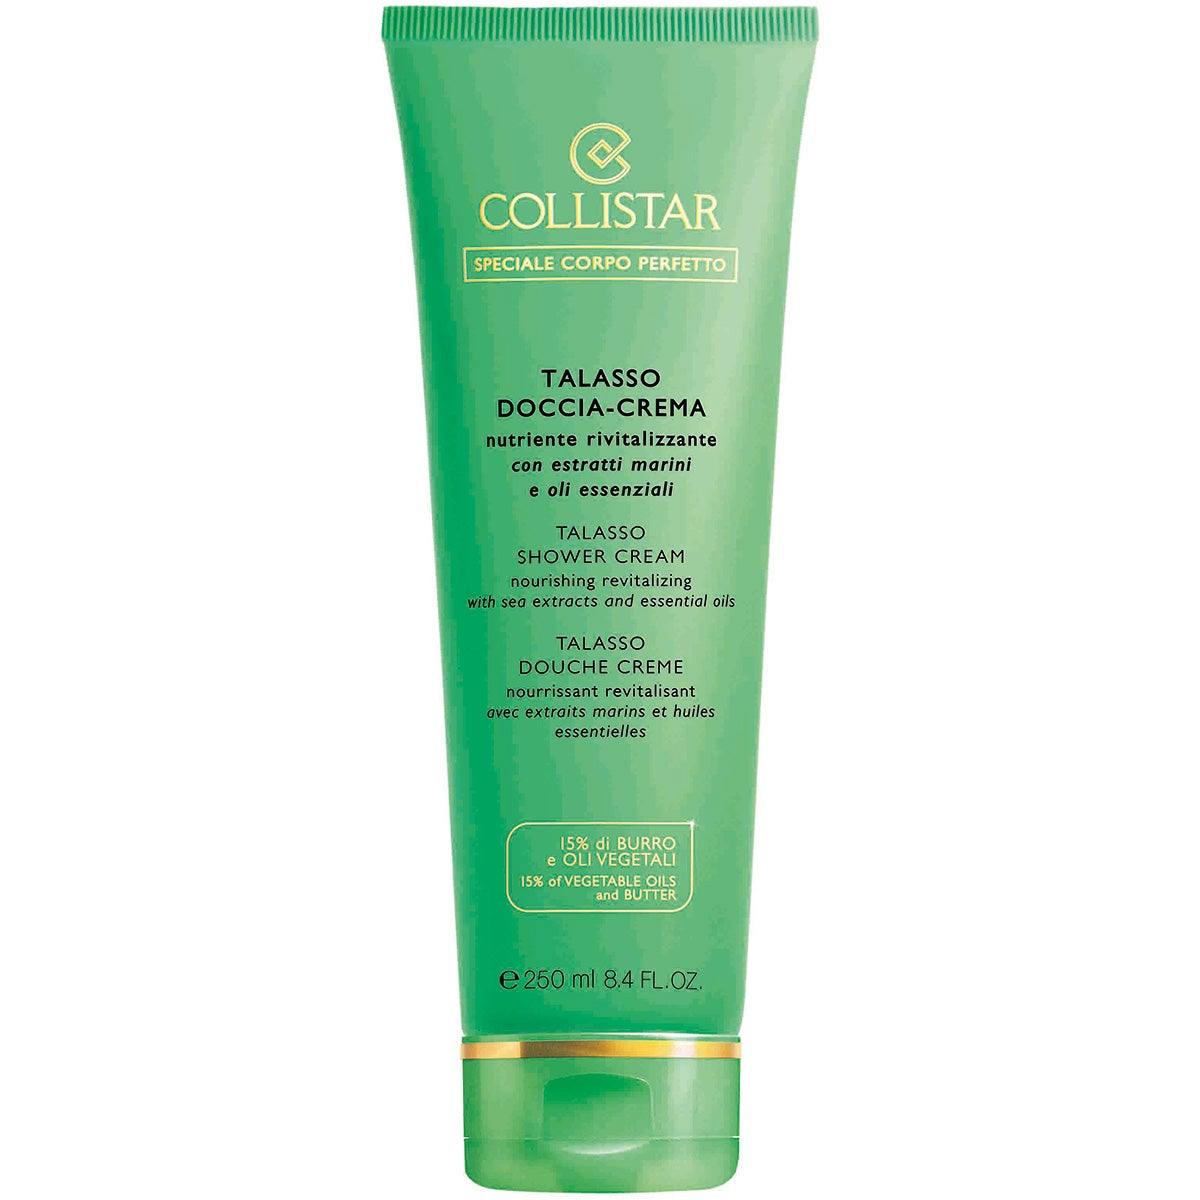 Collistar Talasso Shower Cream